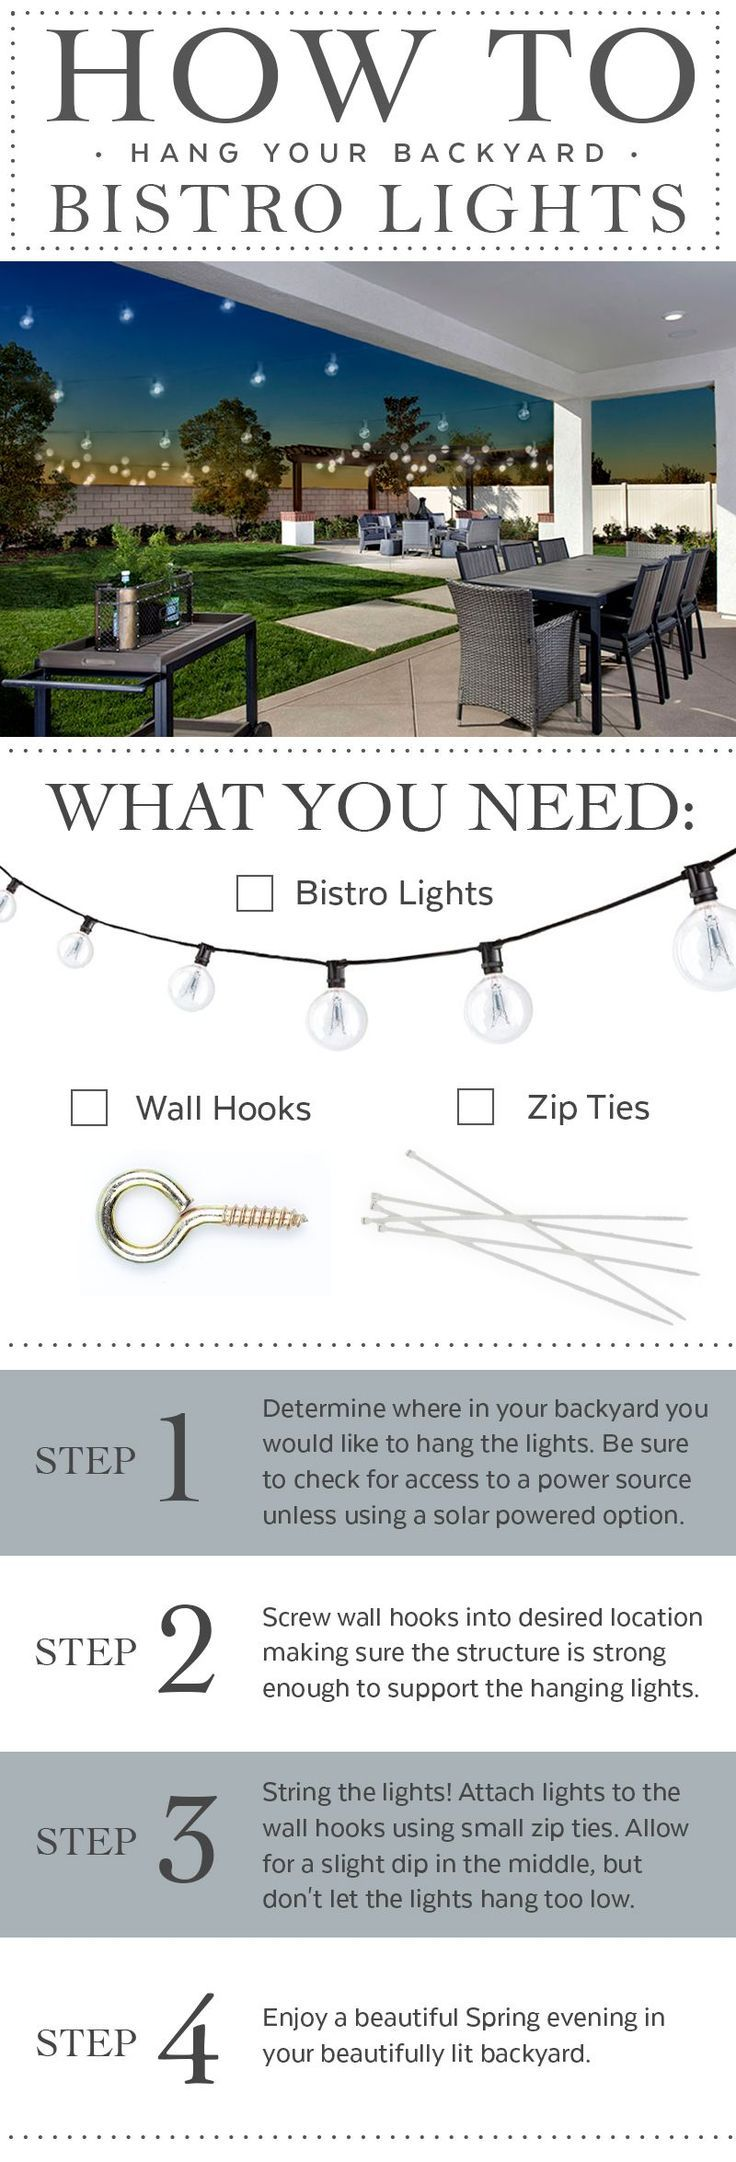 Bistro lights are a creative and cost effective way to decorate your backyard this Spring. | Pulte Homes